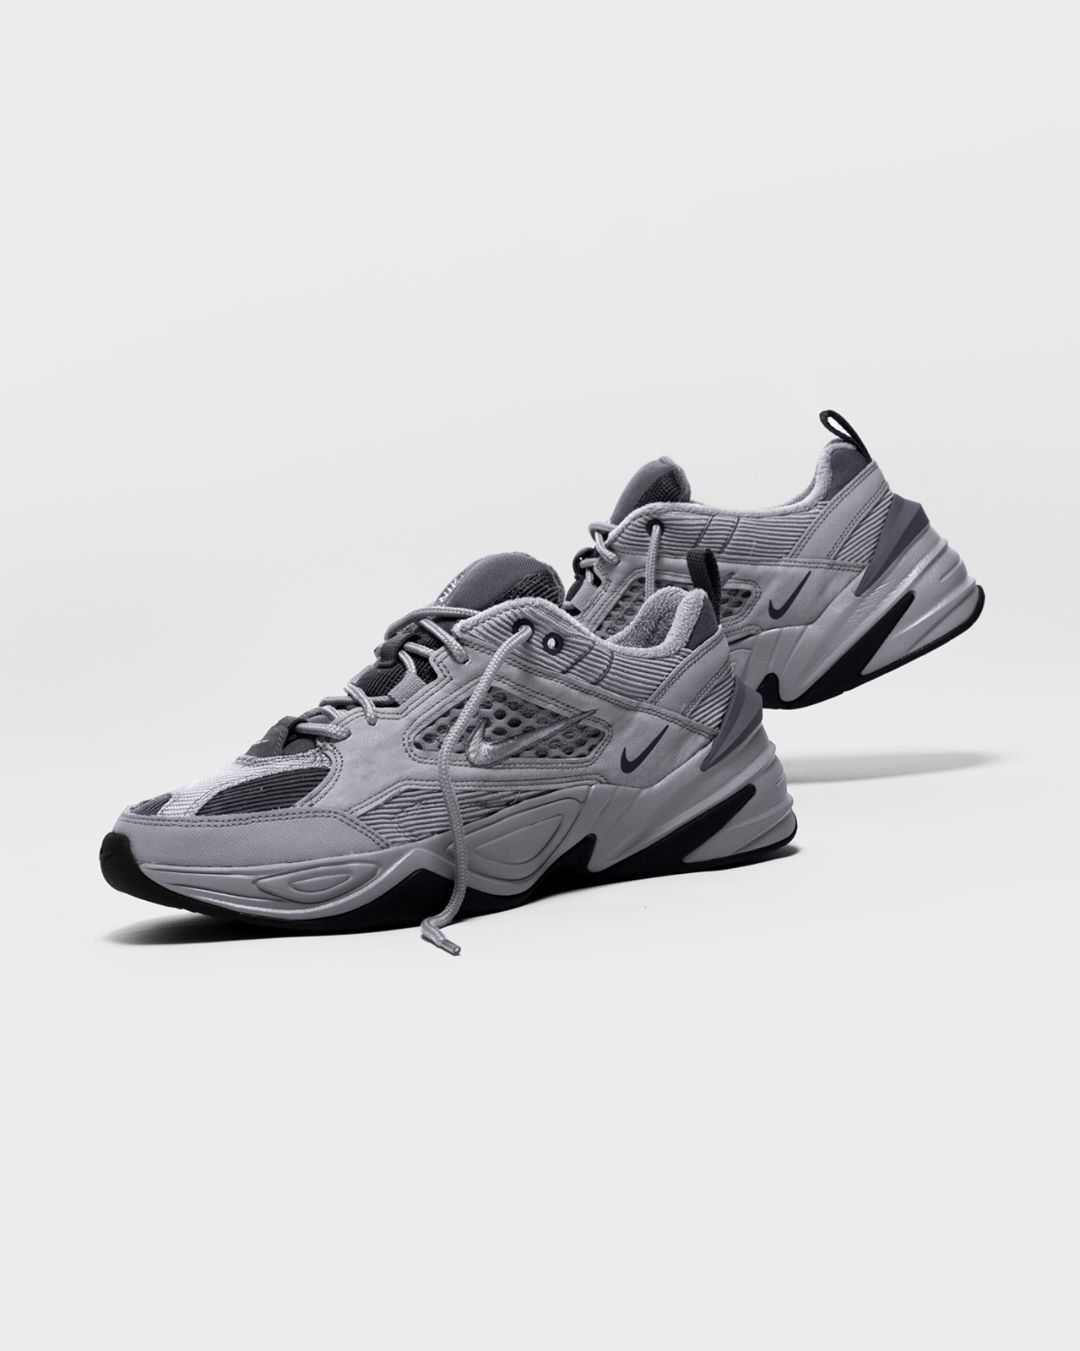 """the best attitude 12e86 4ba87 BSTN Store on Instagram """"The Nike M2K TEKNO SP is available now online on  ⏩ www.bstn.com ⏪ bstn bstnstore nike m2k tekno sp"""""""